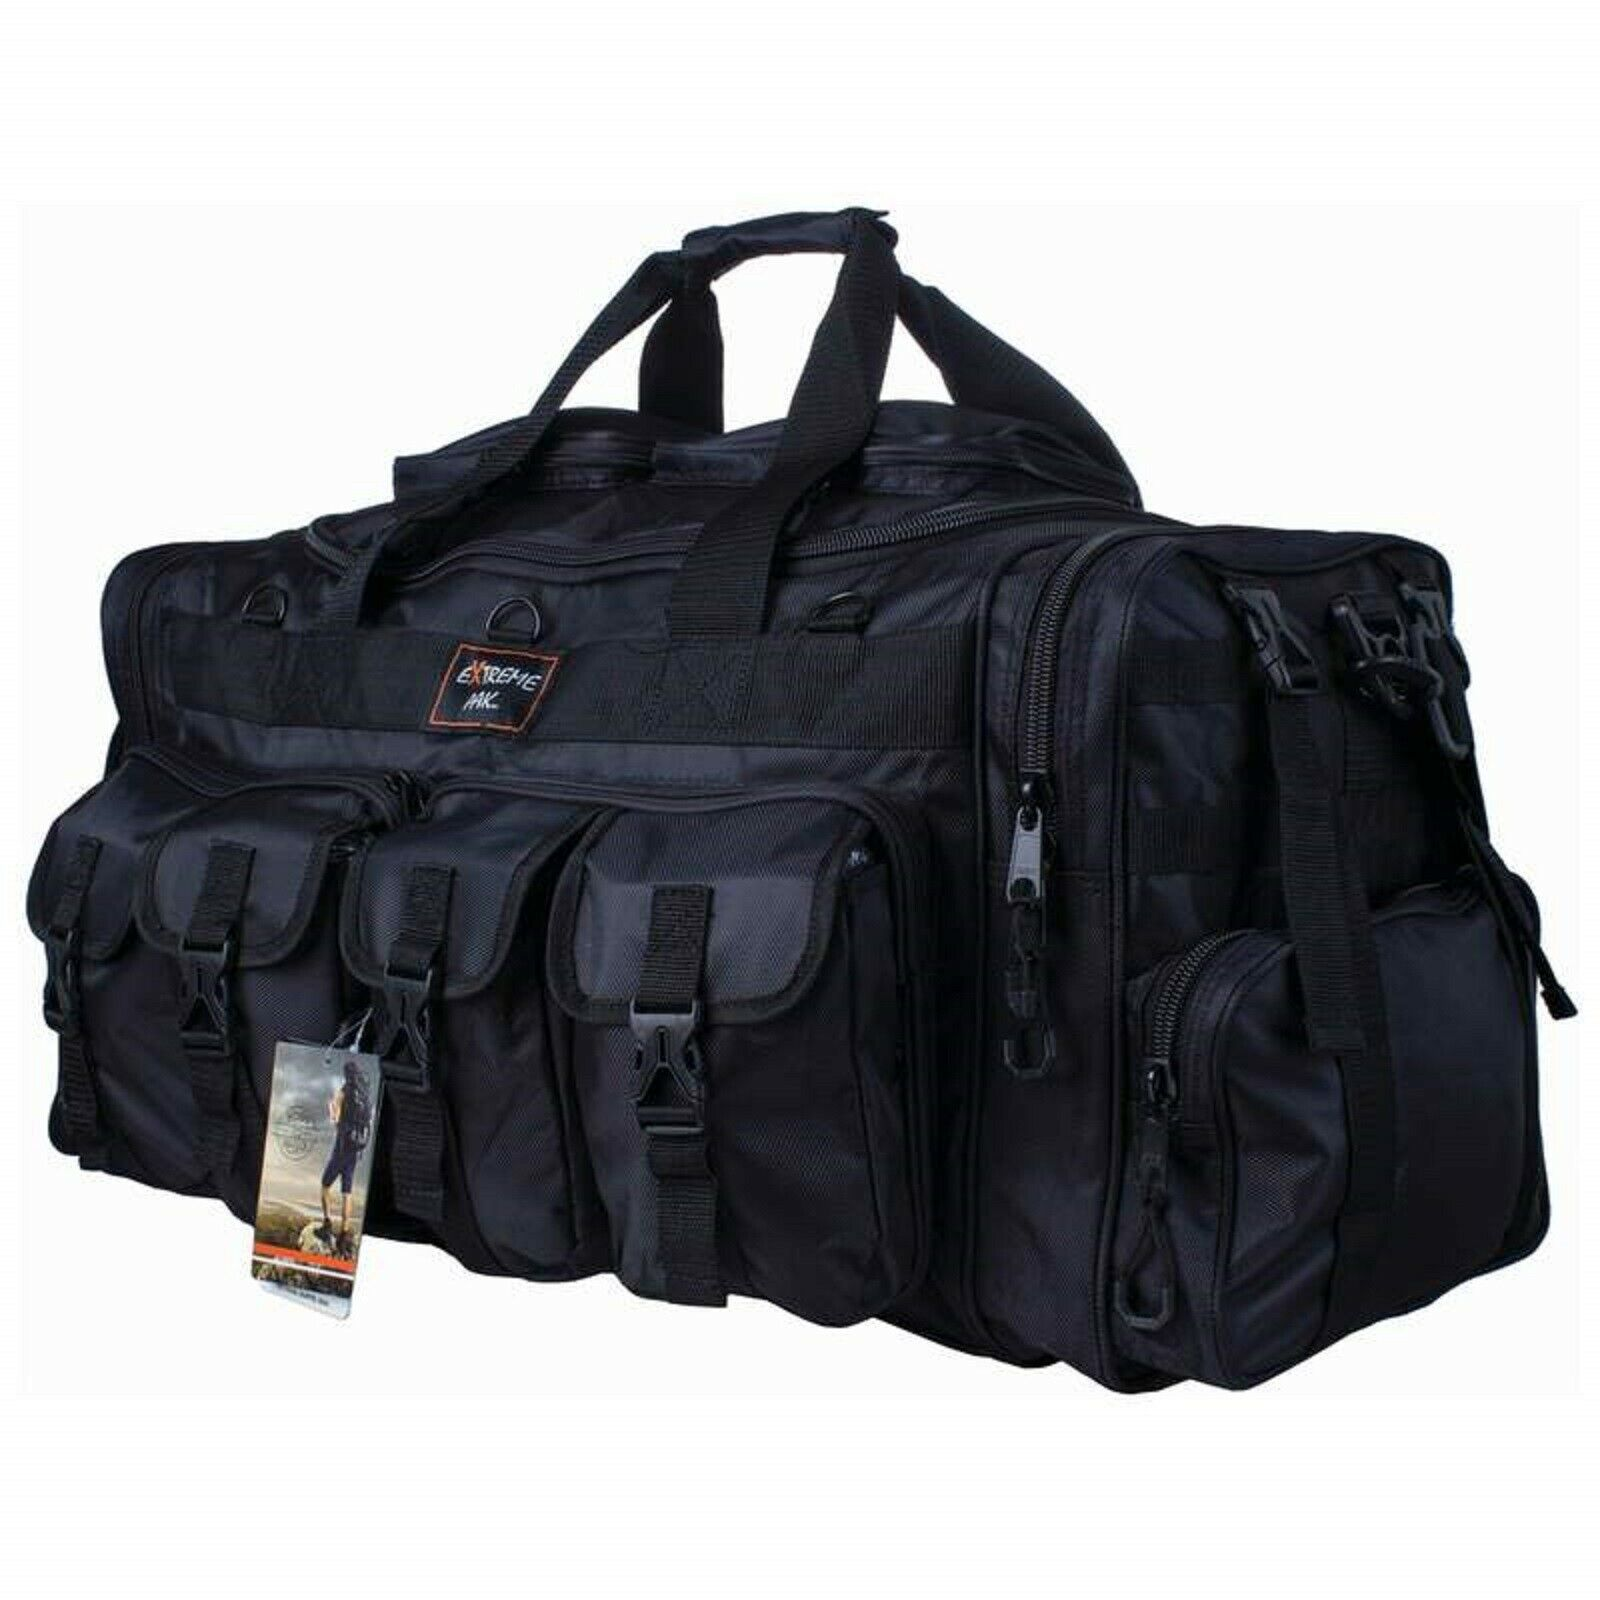 30  Tactical Tote Bag Extreme Pak Range Shooting Camping Utility Water Resistant